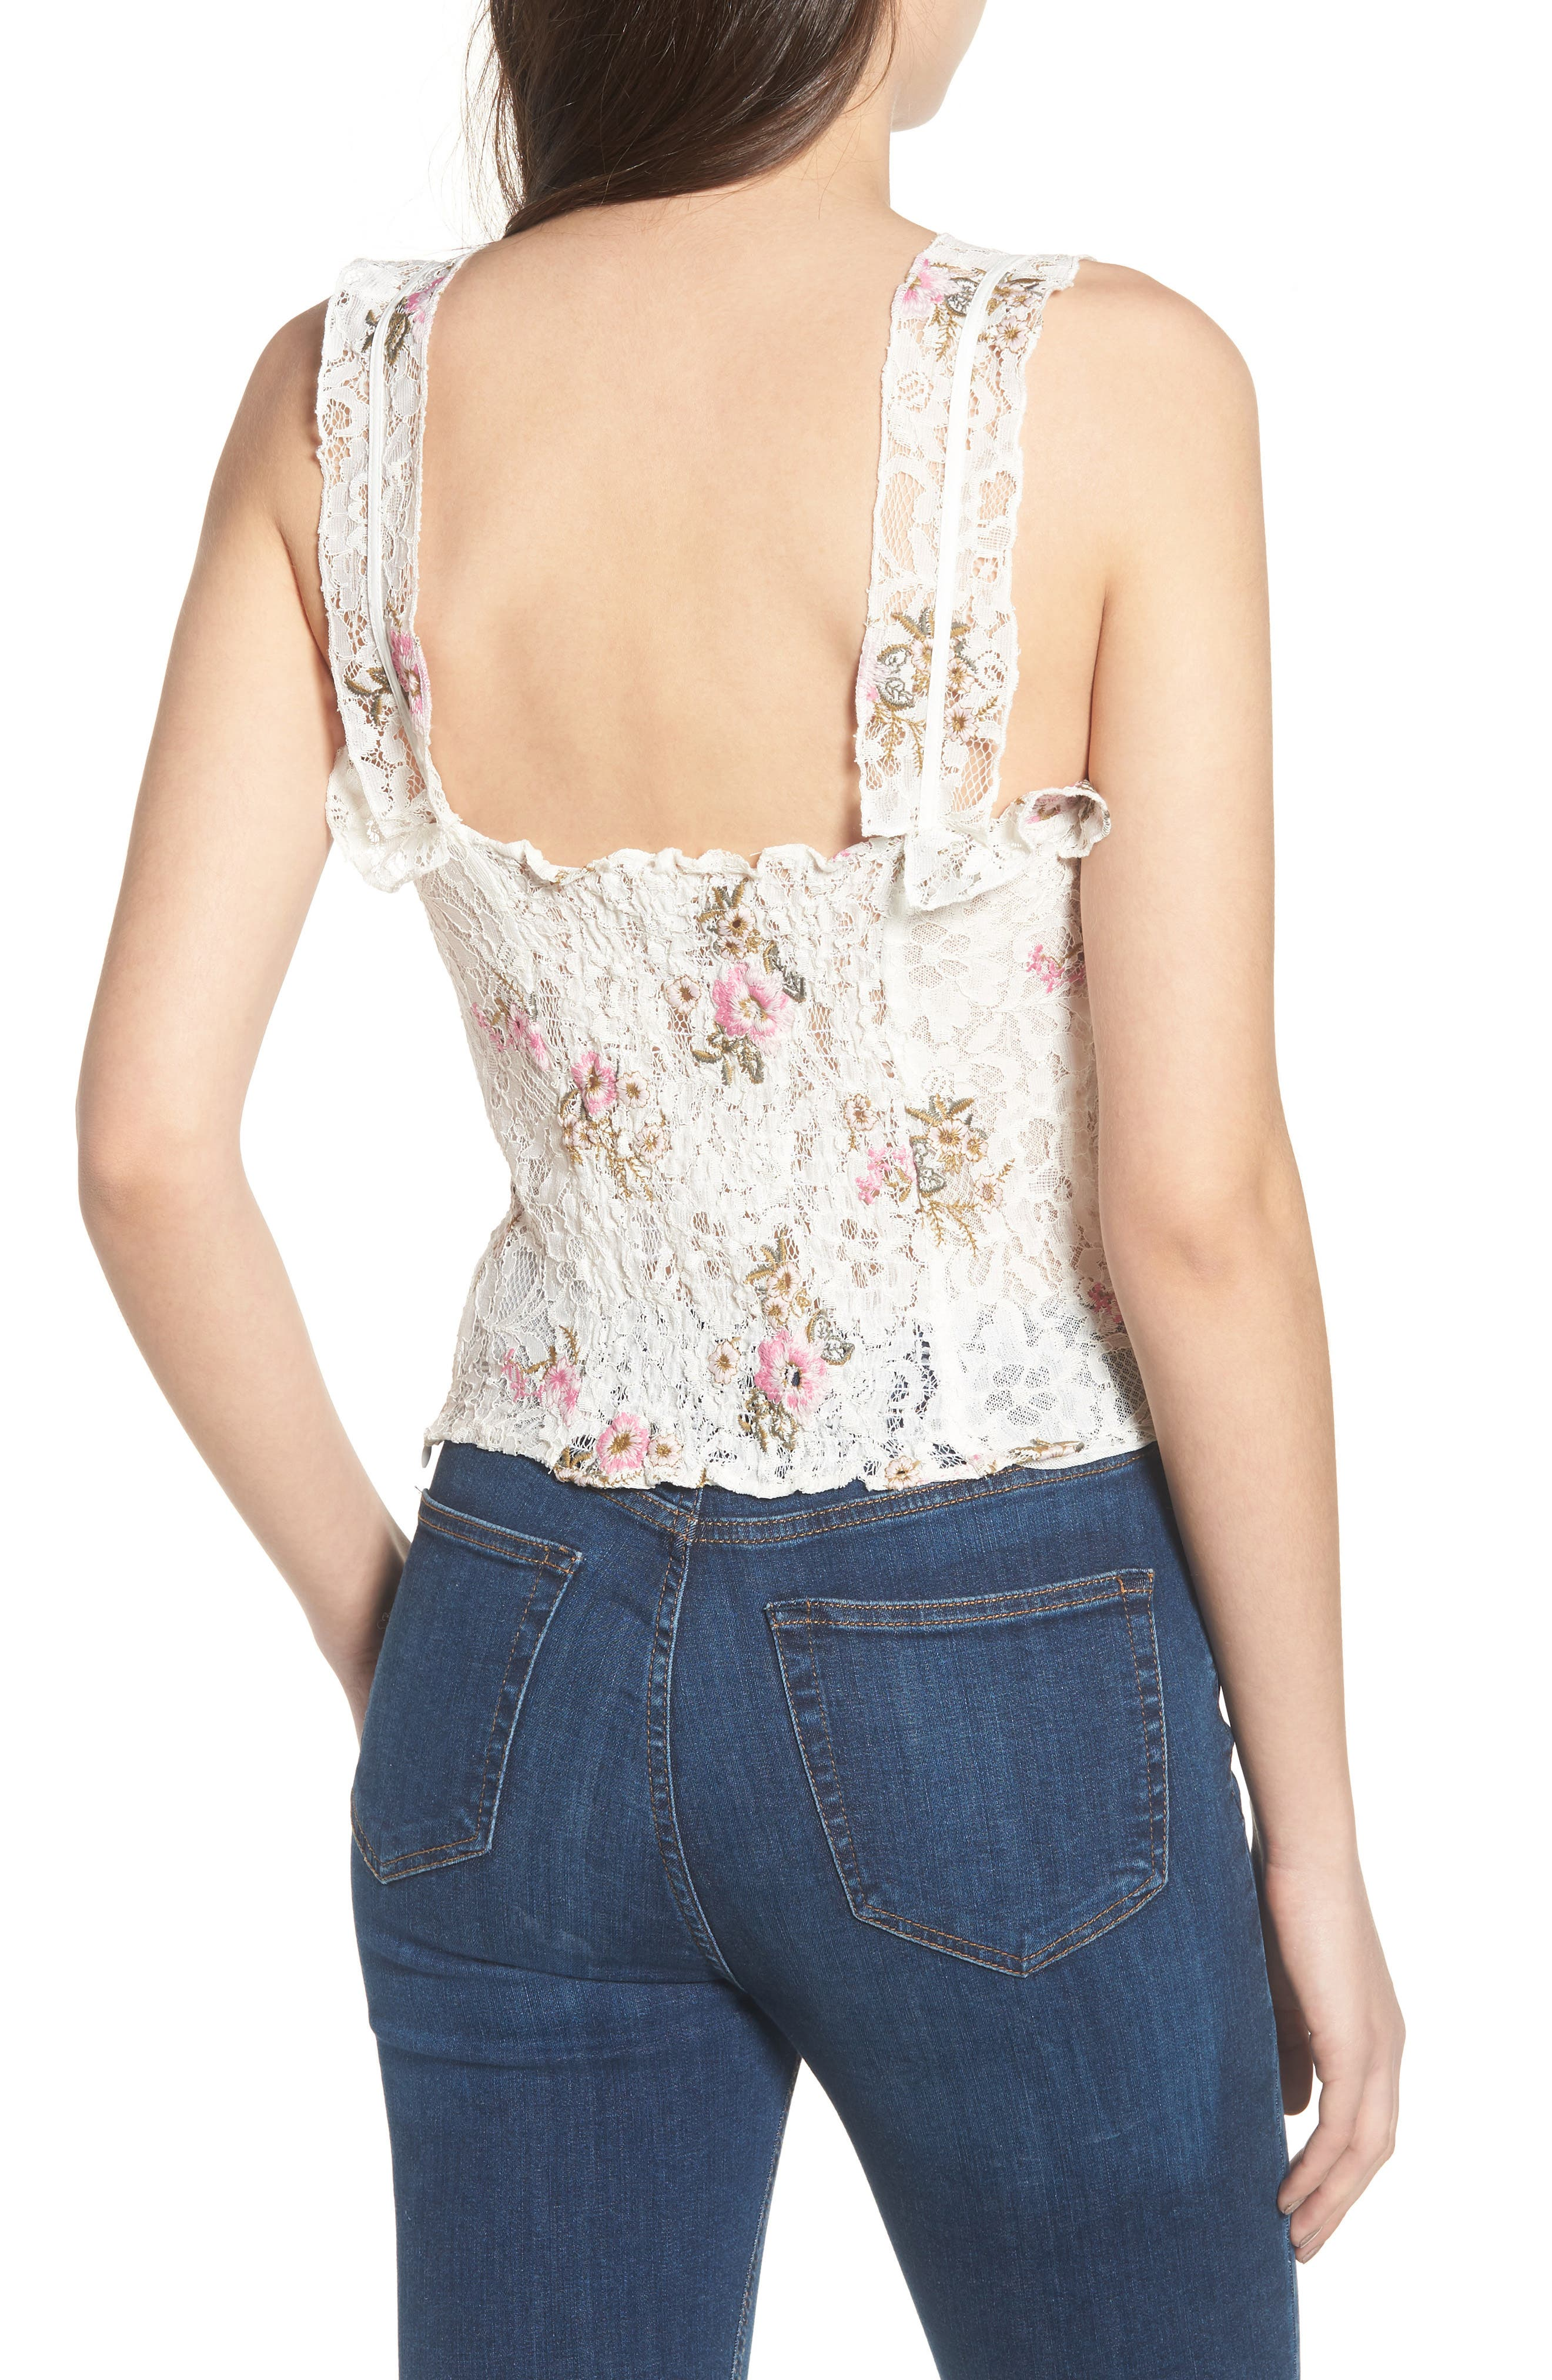 Acerra Lace-Up Lace Top,                             Alternate thumbnail 2, color,                             Ivory Embroidered Lace